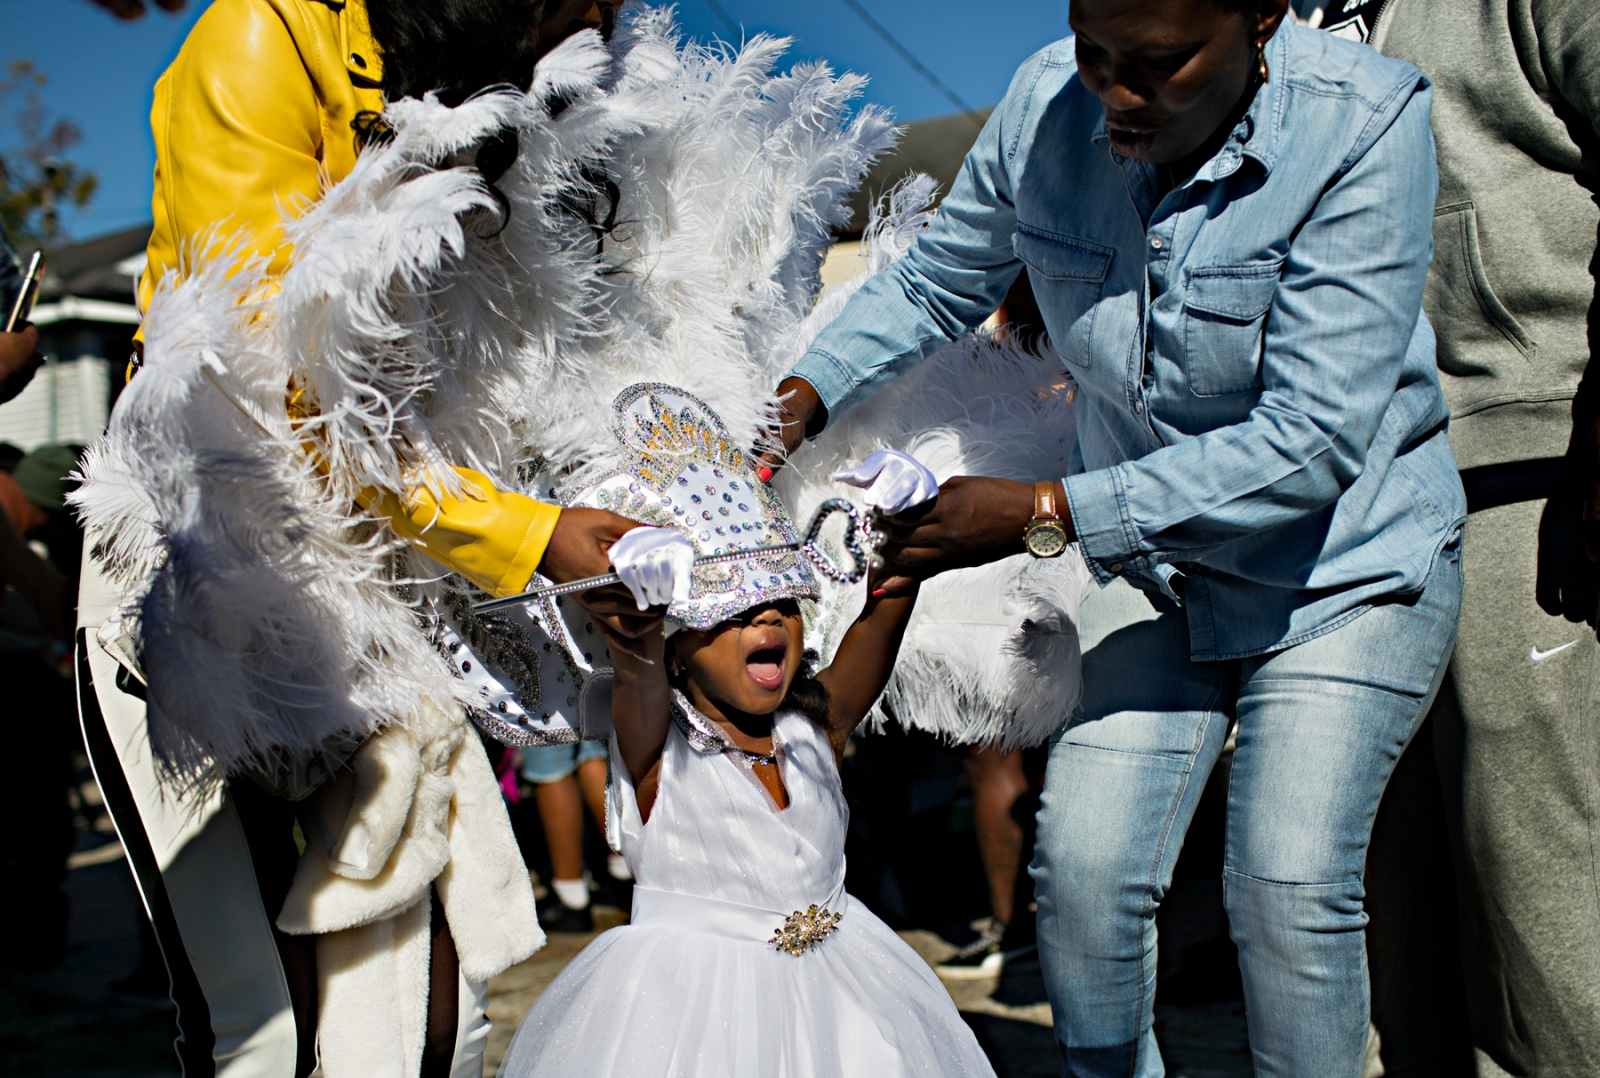 Duchess Blair Smith has some trouble with her feather headdress on her way to the float on which she is to ride during the Second Line Parade.